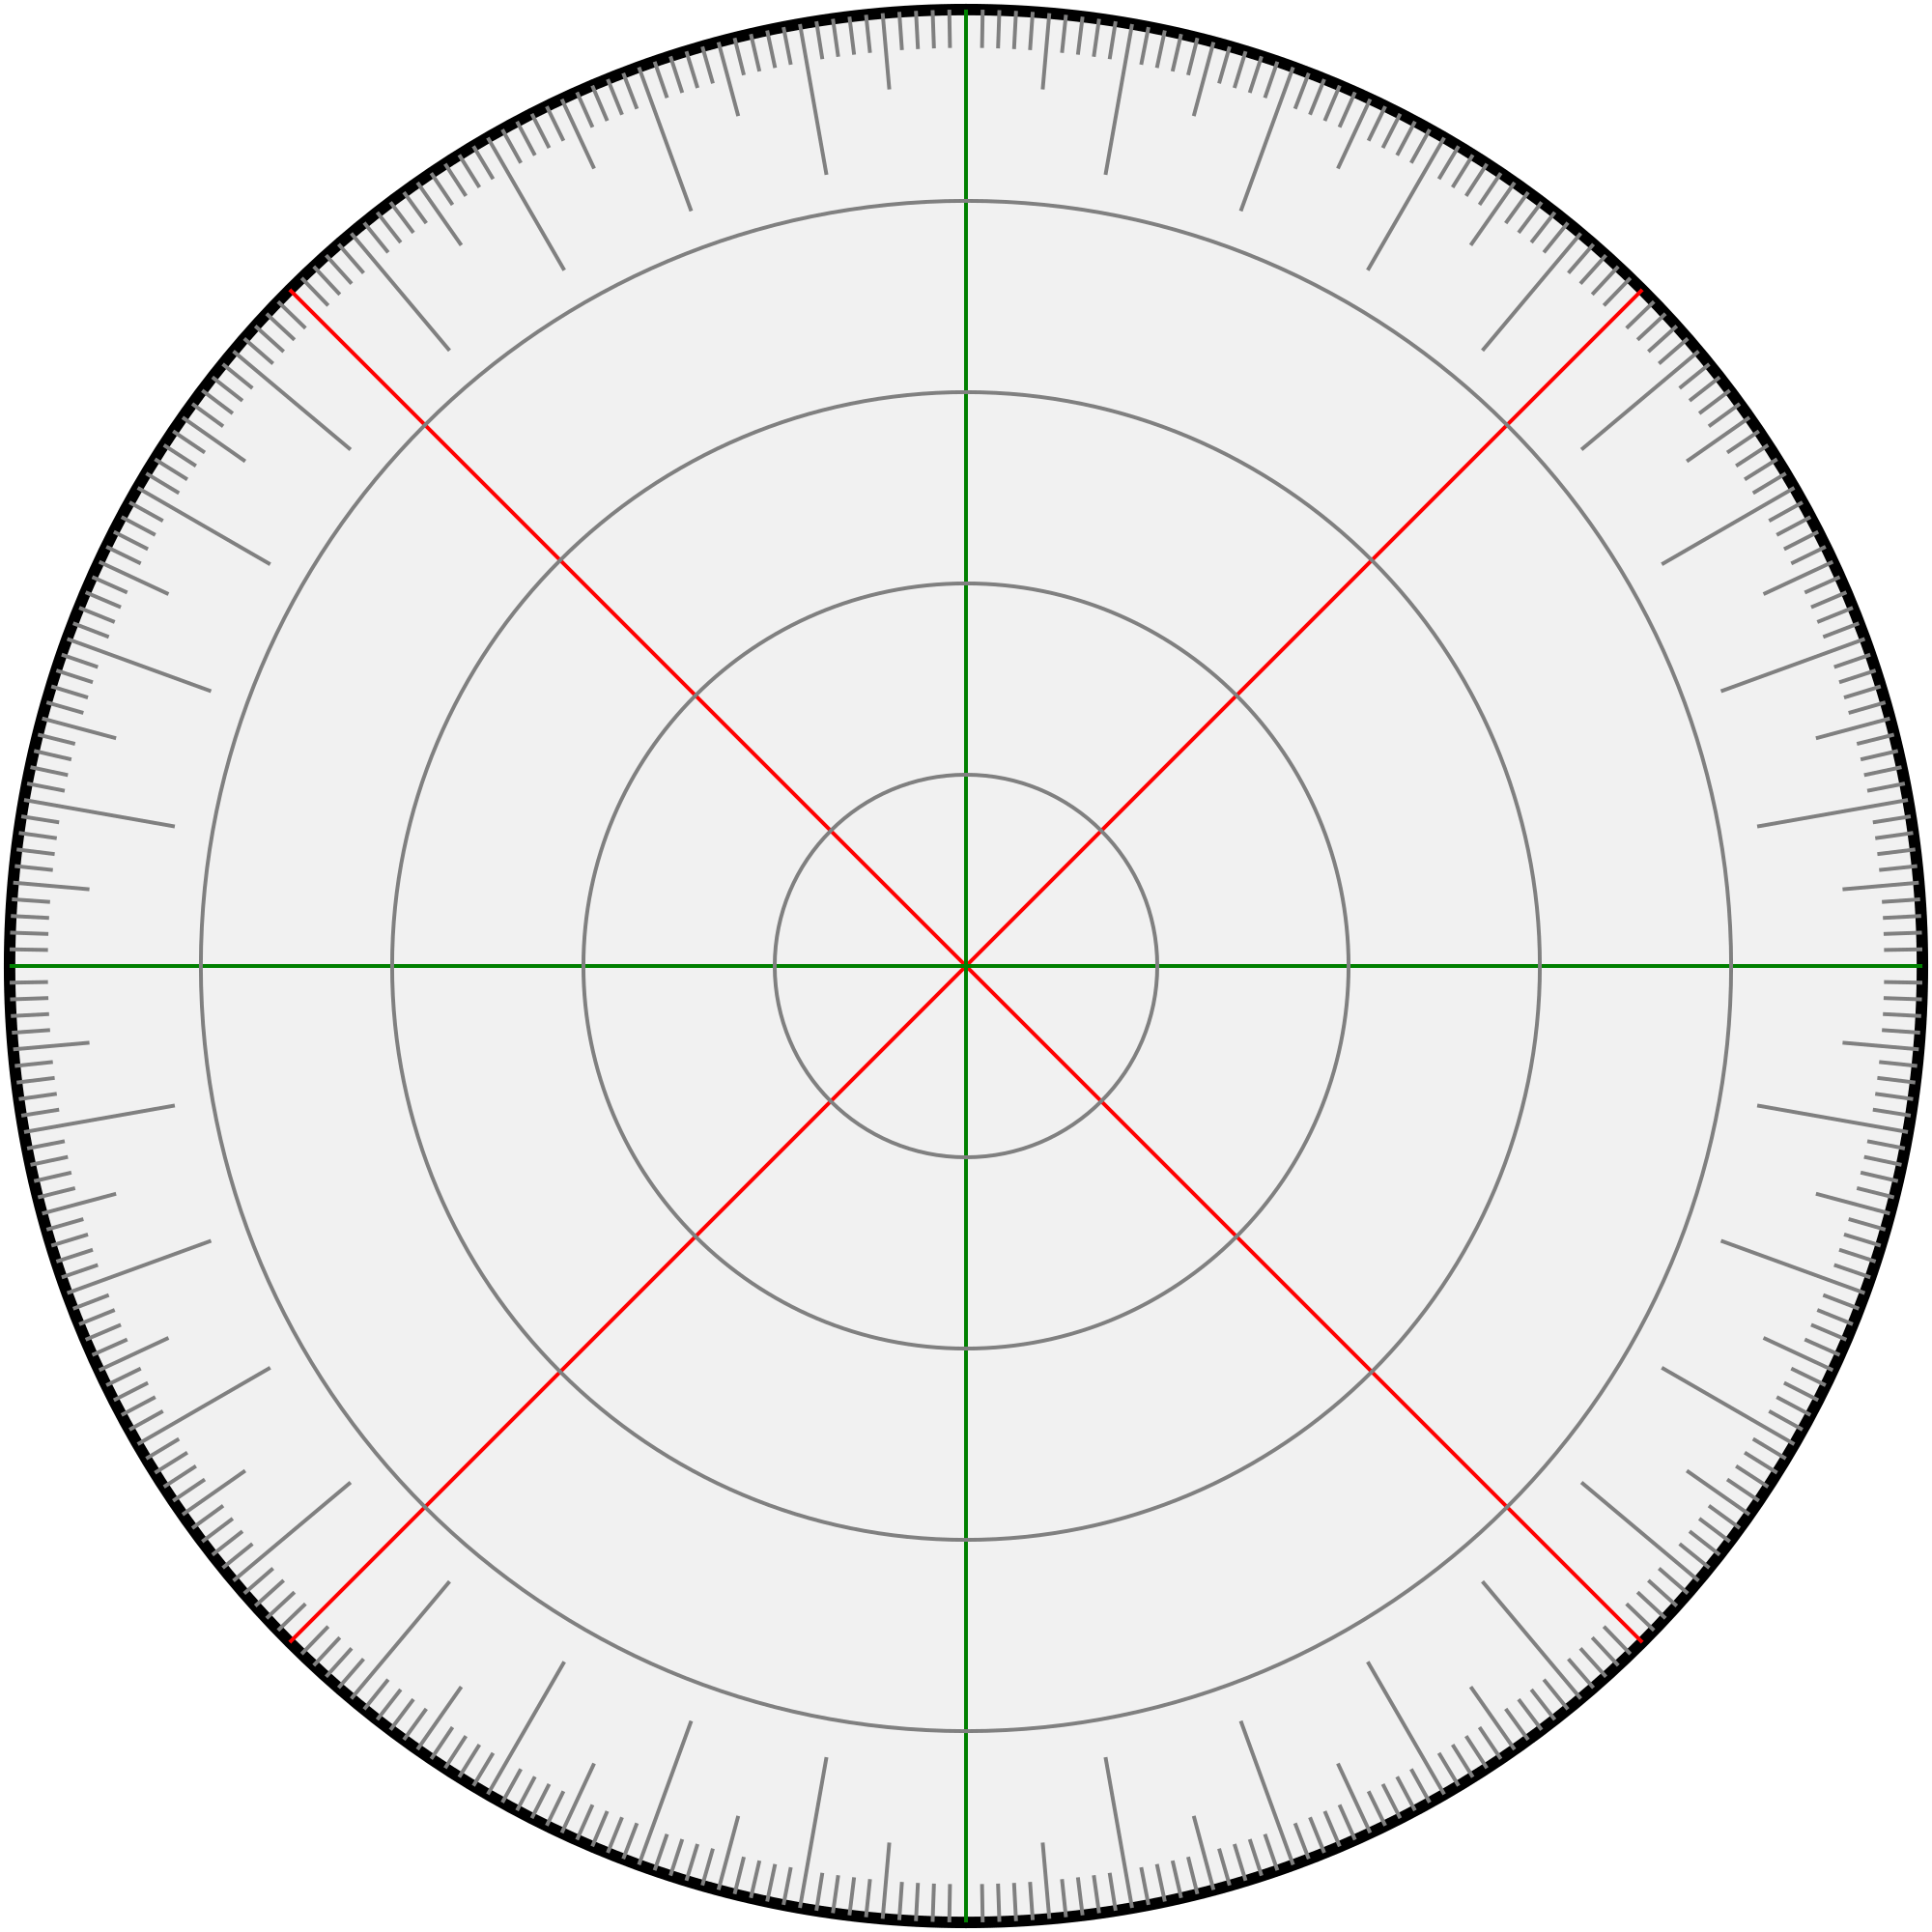 360 Degree Protractor Template